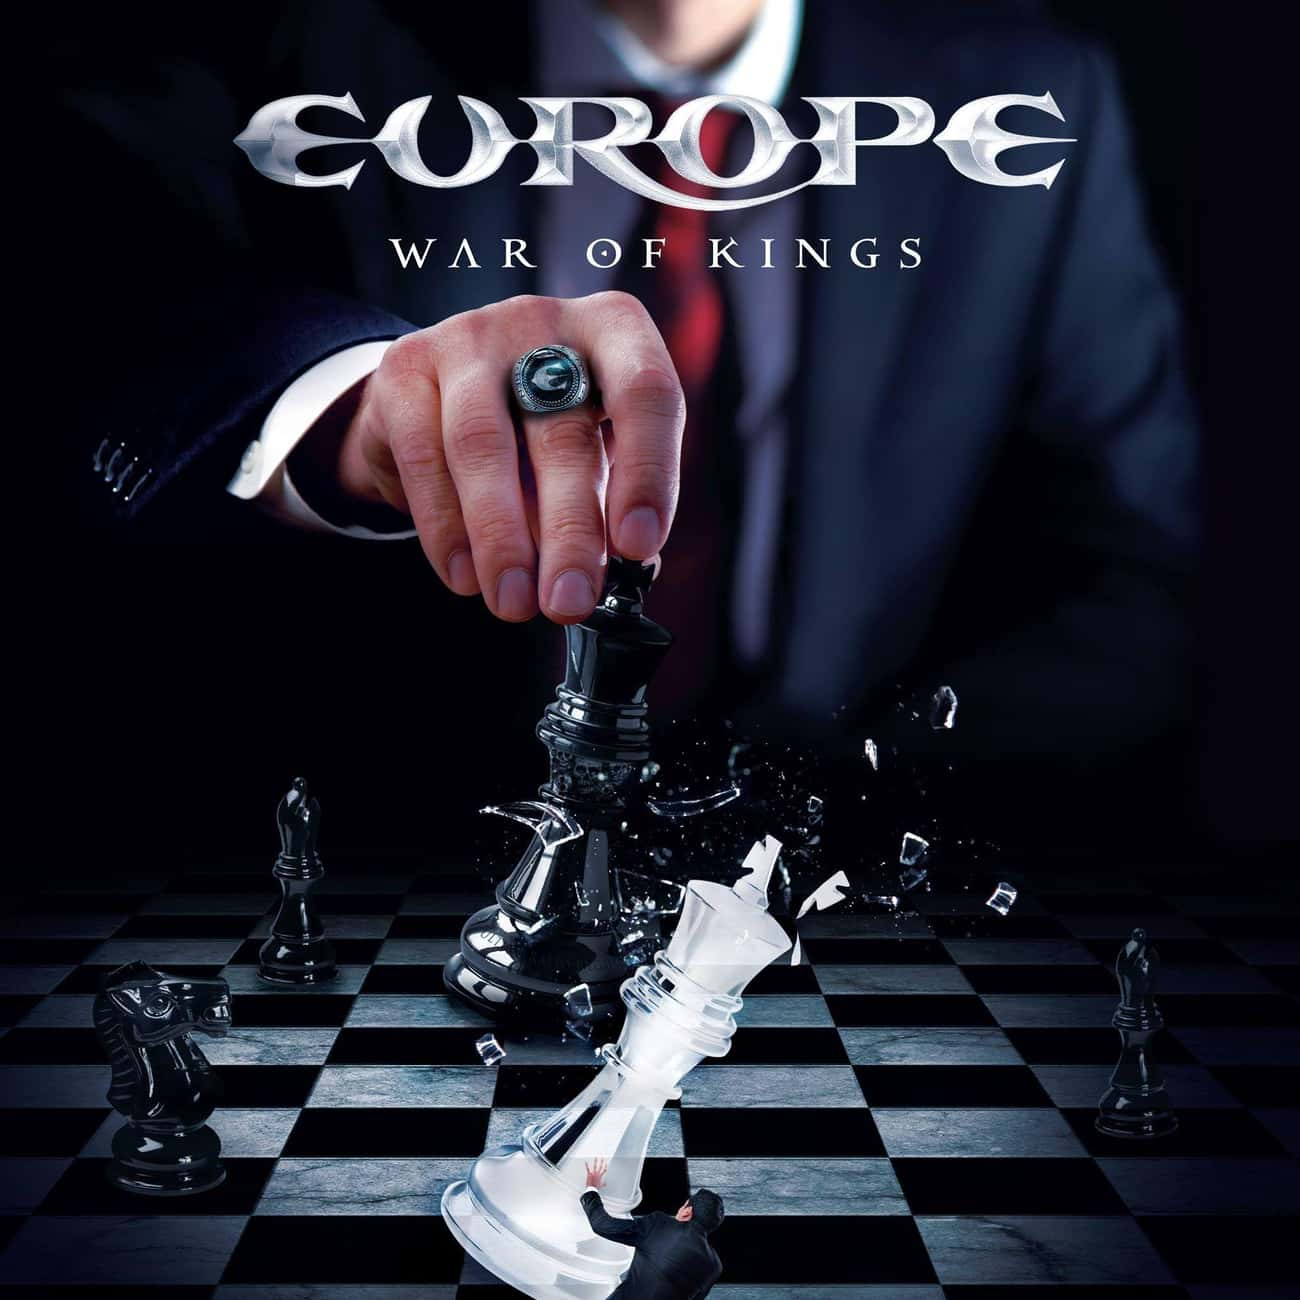 War of Kings is listed (or ranked) 2 on the list The Best Europe Albums of All Time